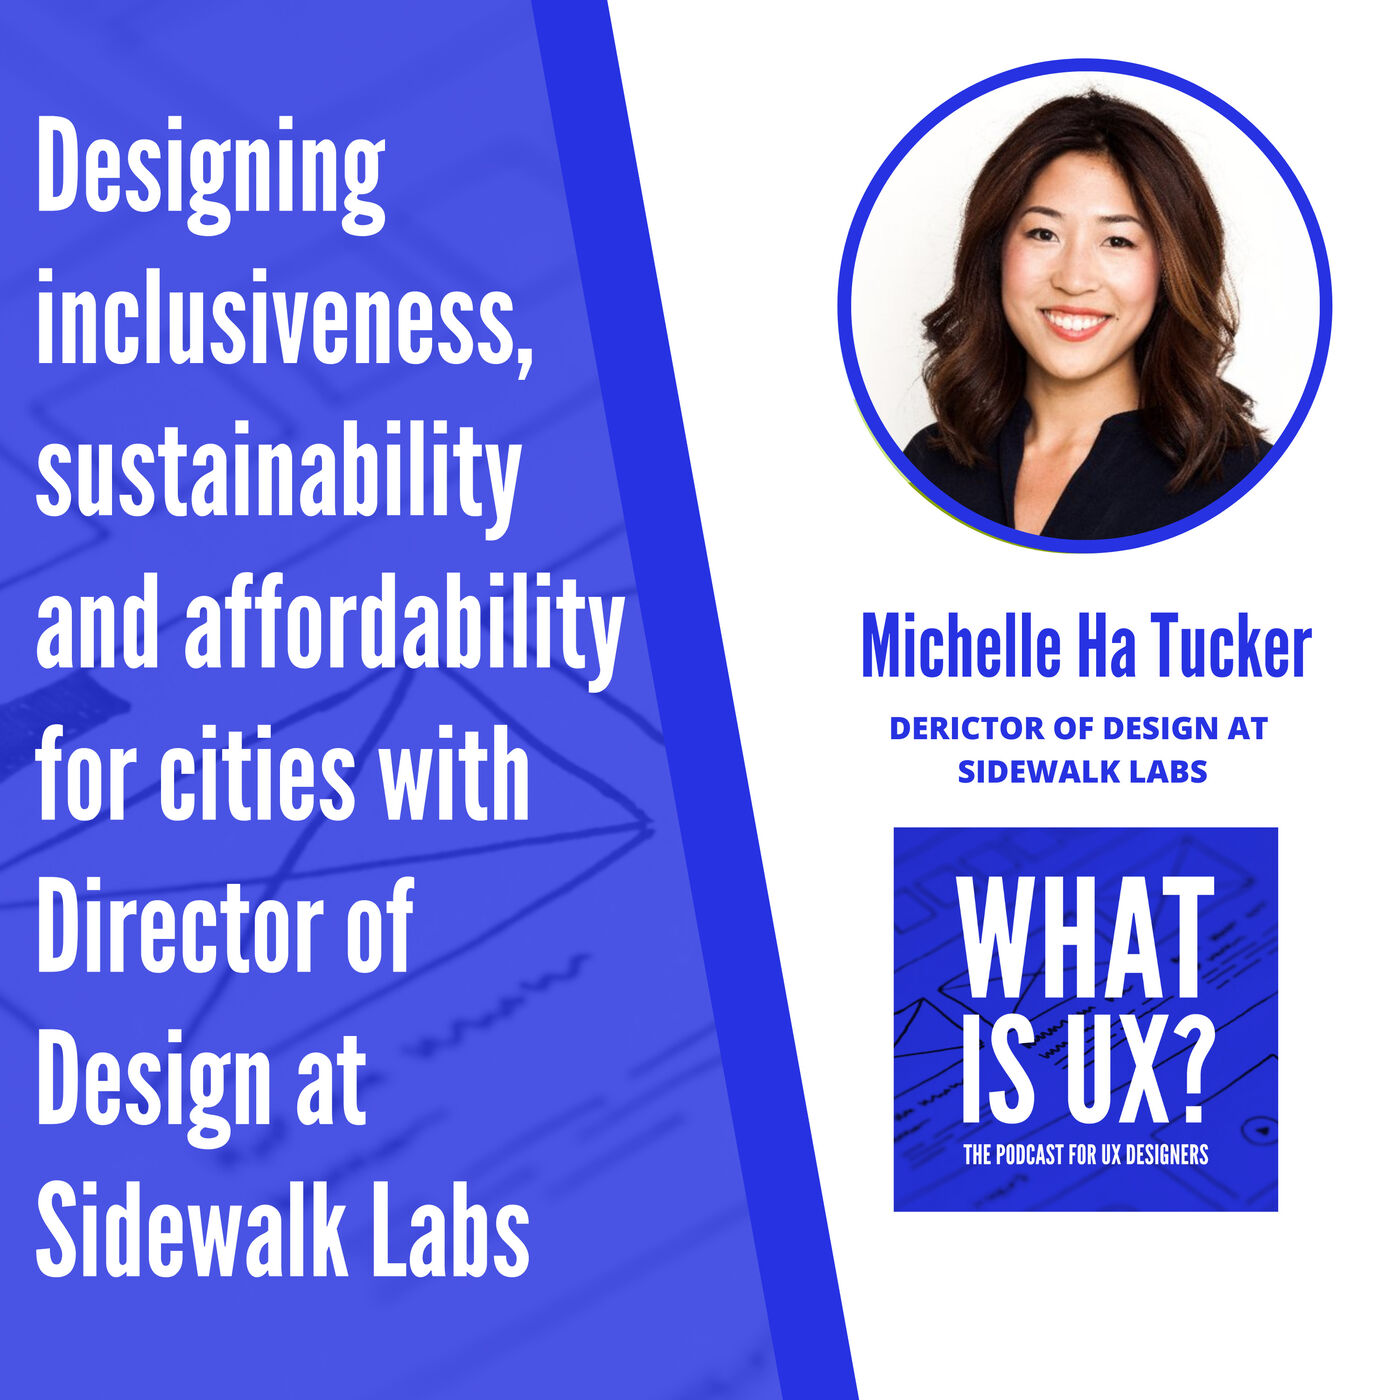 S1E7 Designing inclusiveness, sustainability and affordability for cities with Director of Design at Sidewalk Labs, Michelle Ha Tucker